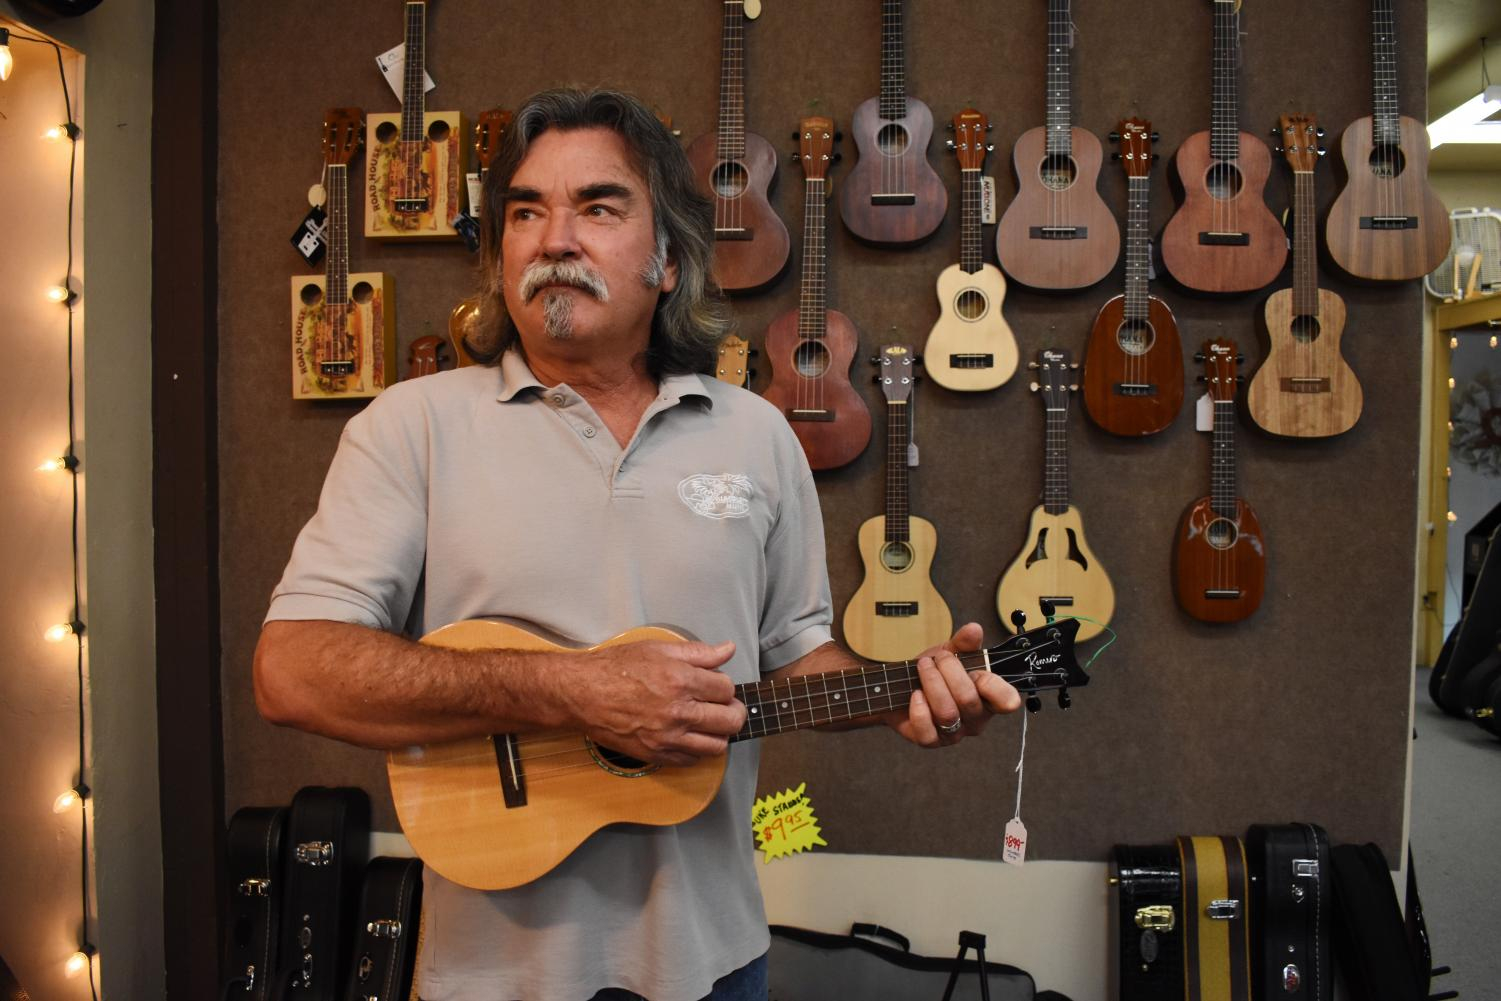 Roy Good plays ukulele inside the shop he has been working at for over three decades.